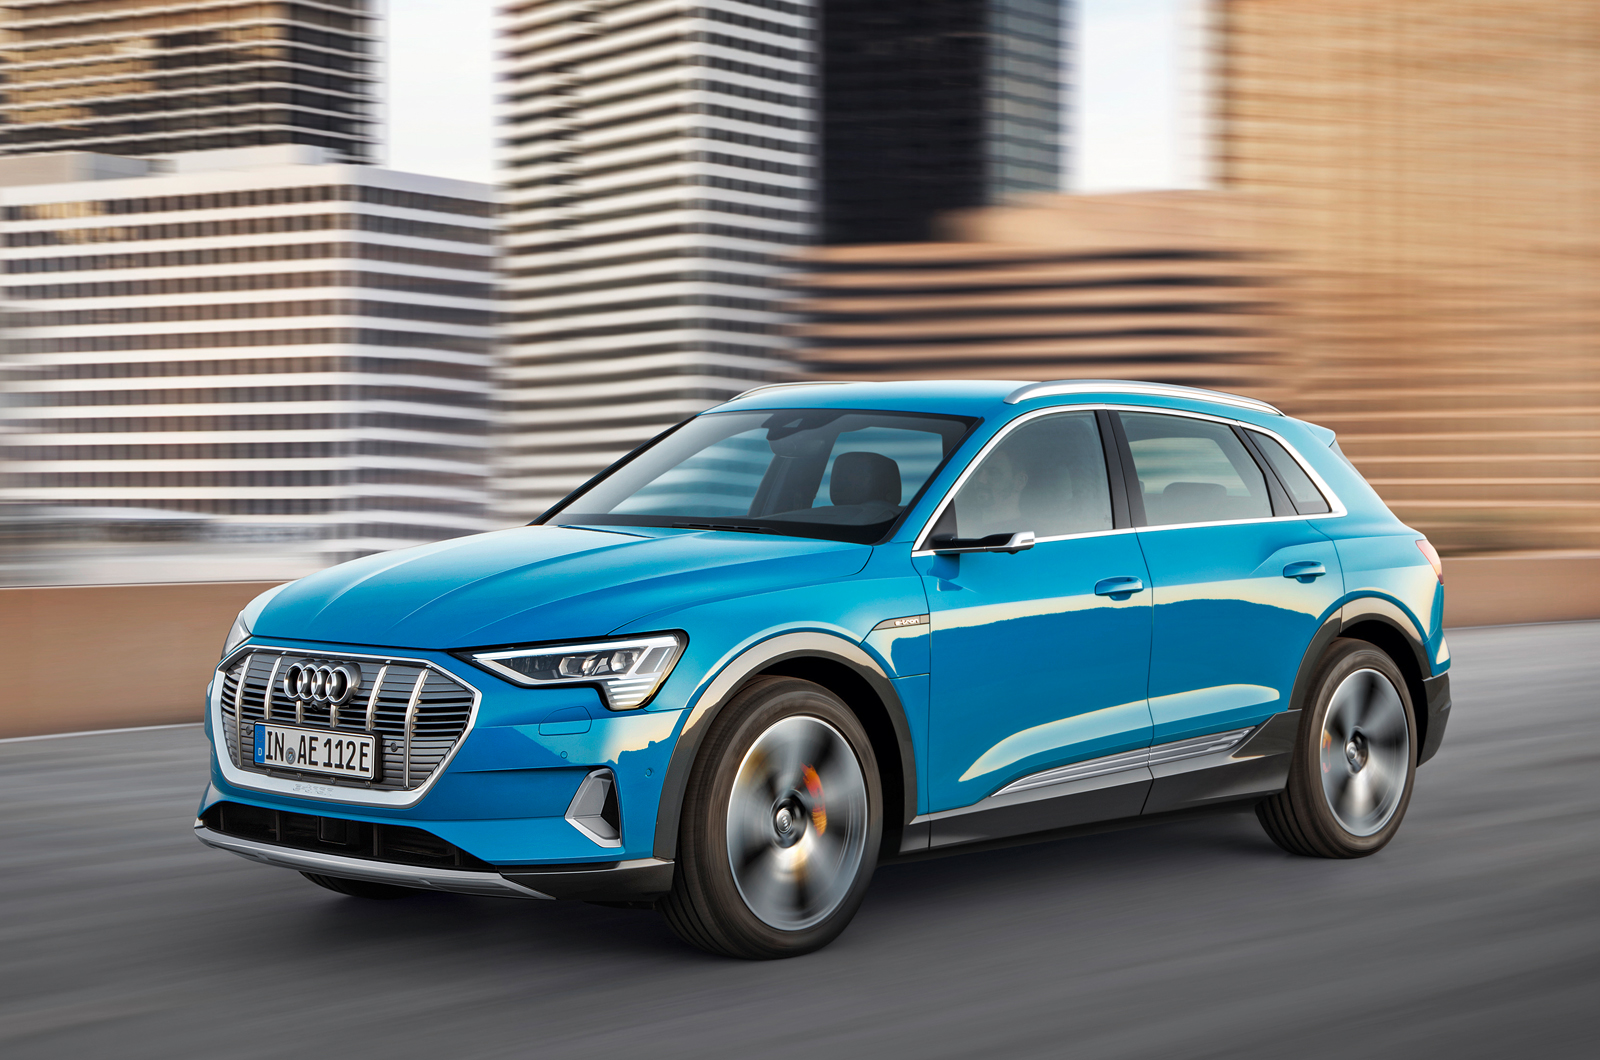 2019 audi e tron price specs and release date what car rh whatcar com Electrical Installation Training Electrical Installation Guide Design